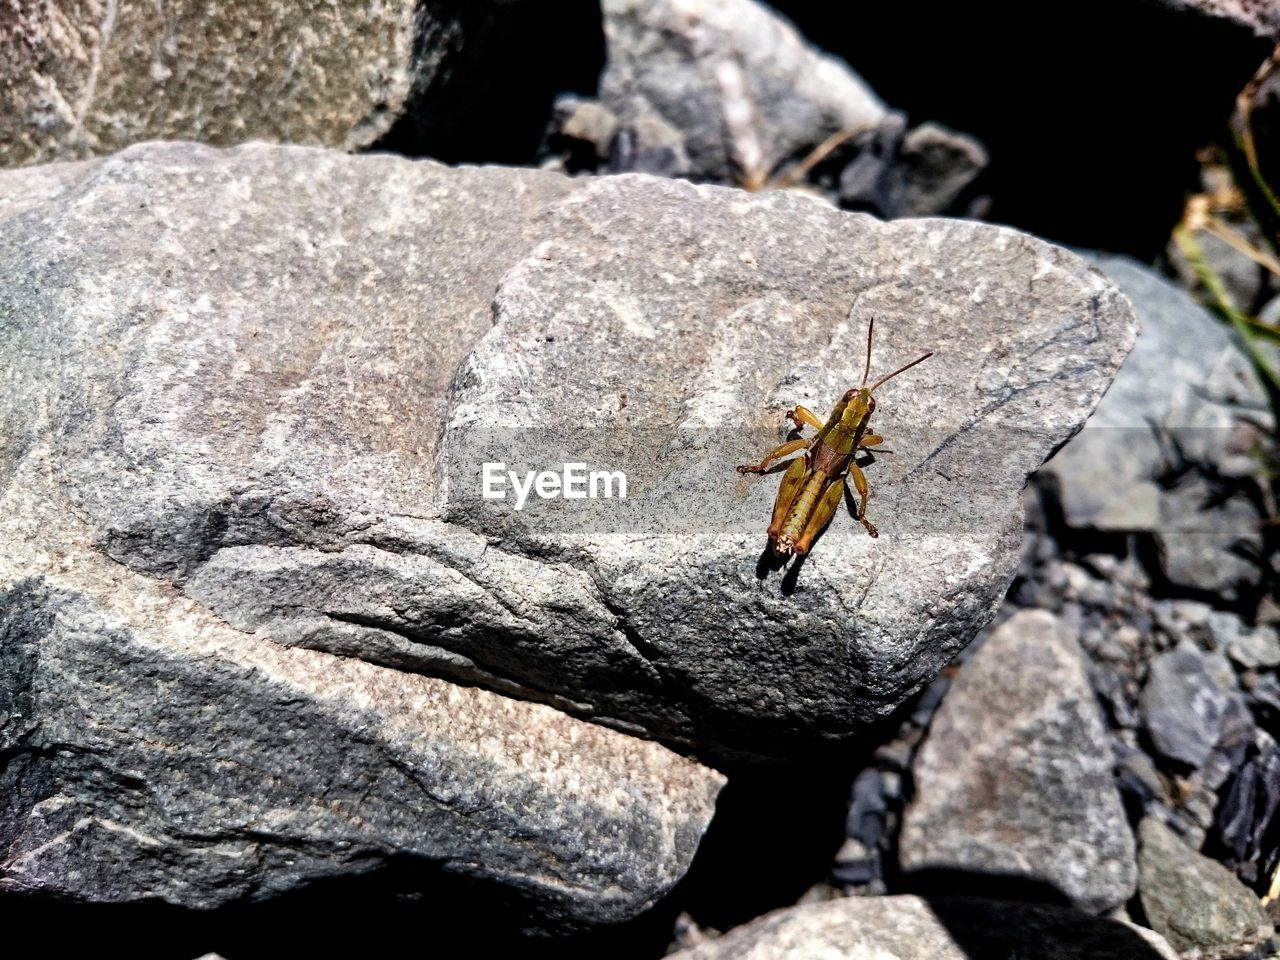 animals in the wild, animal wildlife, animal themes, one animal, animal, invertebrate, insect, rock, rock - object, solid, close-up, no people, day, nature, outdoors, textured, sunlight, focus on foreground, selective focus, arthropod